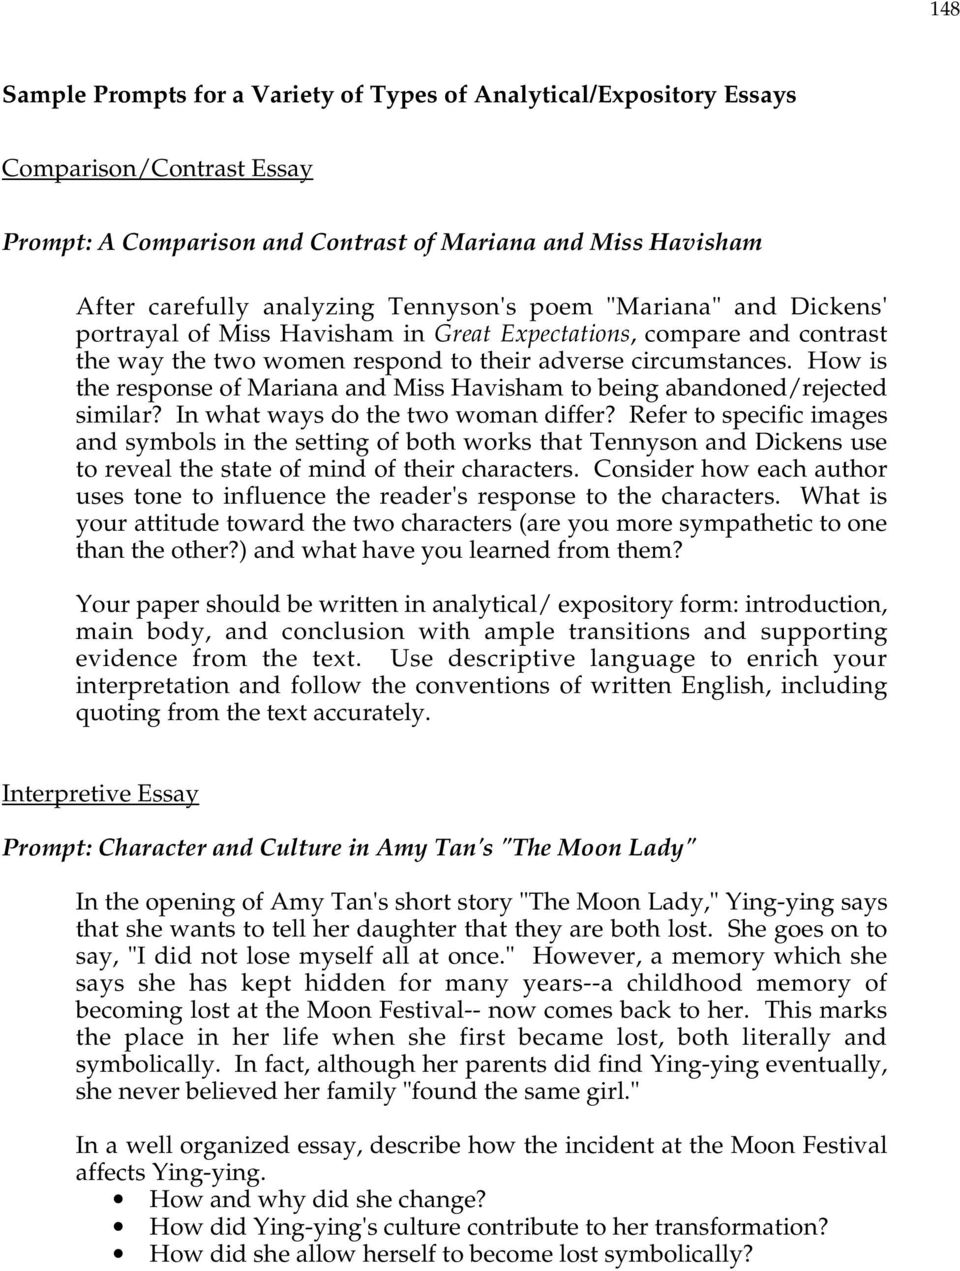 Read My Essay How Is The Response Of Mariana And Miss Havisham To Being  Abandonedrejected Similar Should Students Be Paid For Having Good Grades Essay also My Future Essay Sample Prompts For A Variety Of Types Of Analyticalexpository  History Essays Online